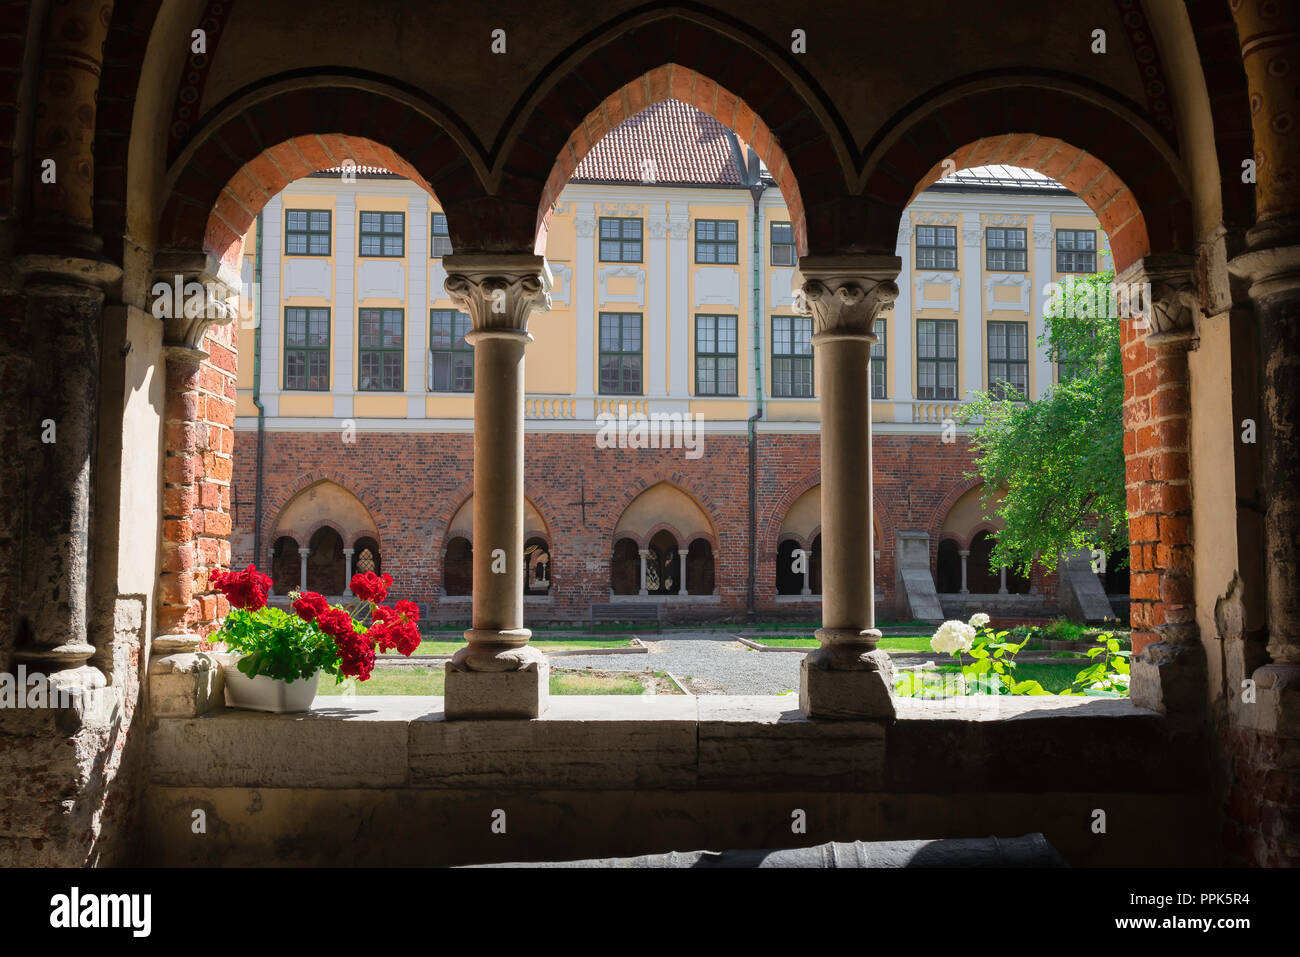 Cloister Riga Cathedral, view in summer from a medieval cloister window across the quadrangle garden of the city cathedral, Riga, Latvia. - Stock Image